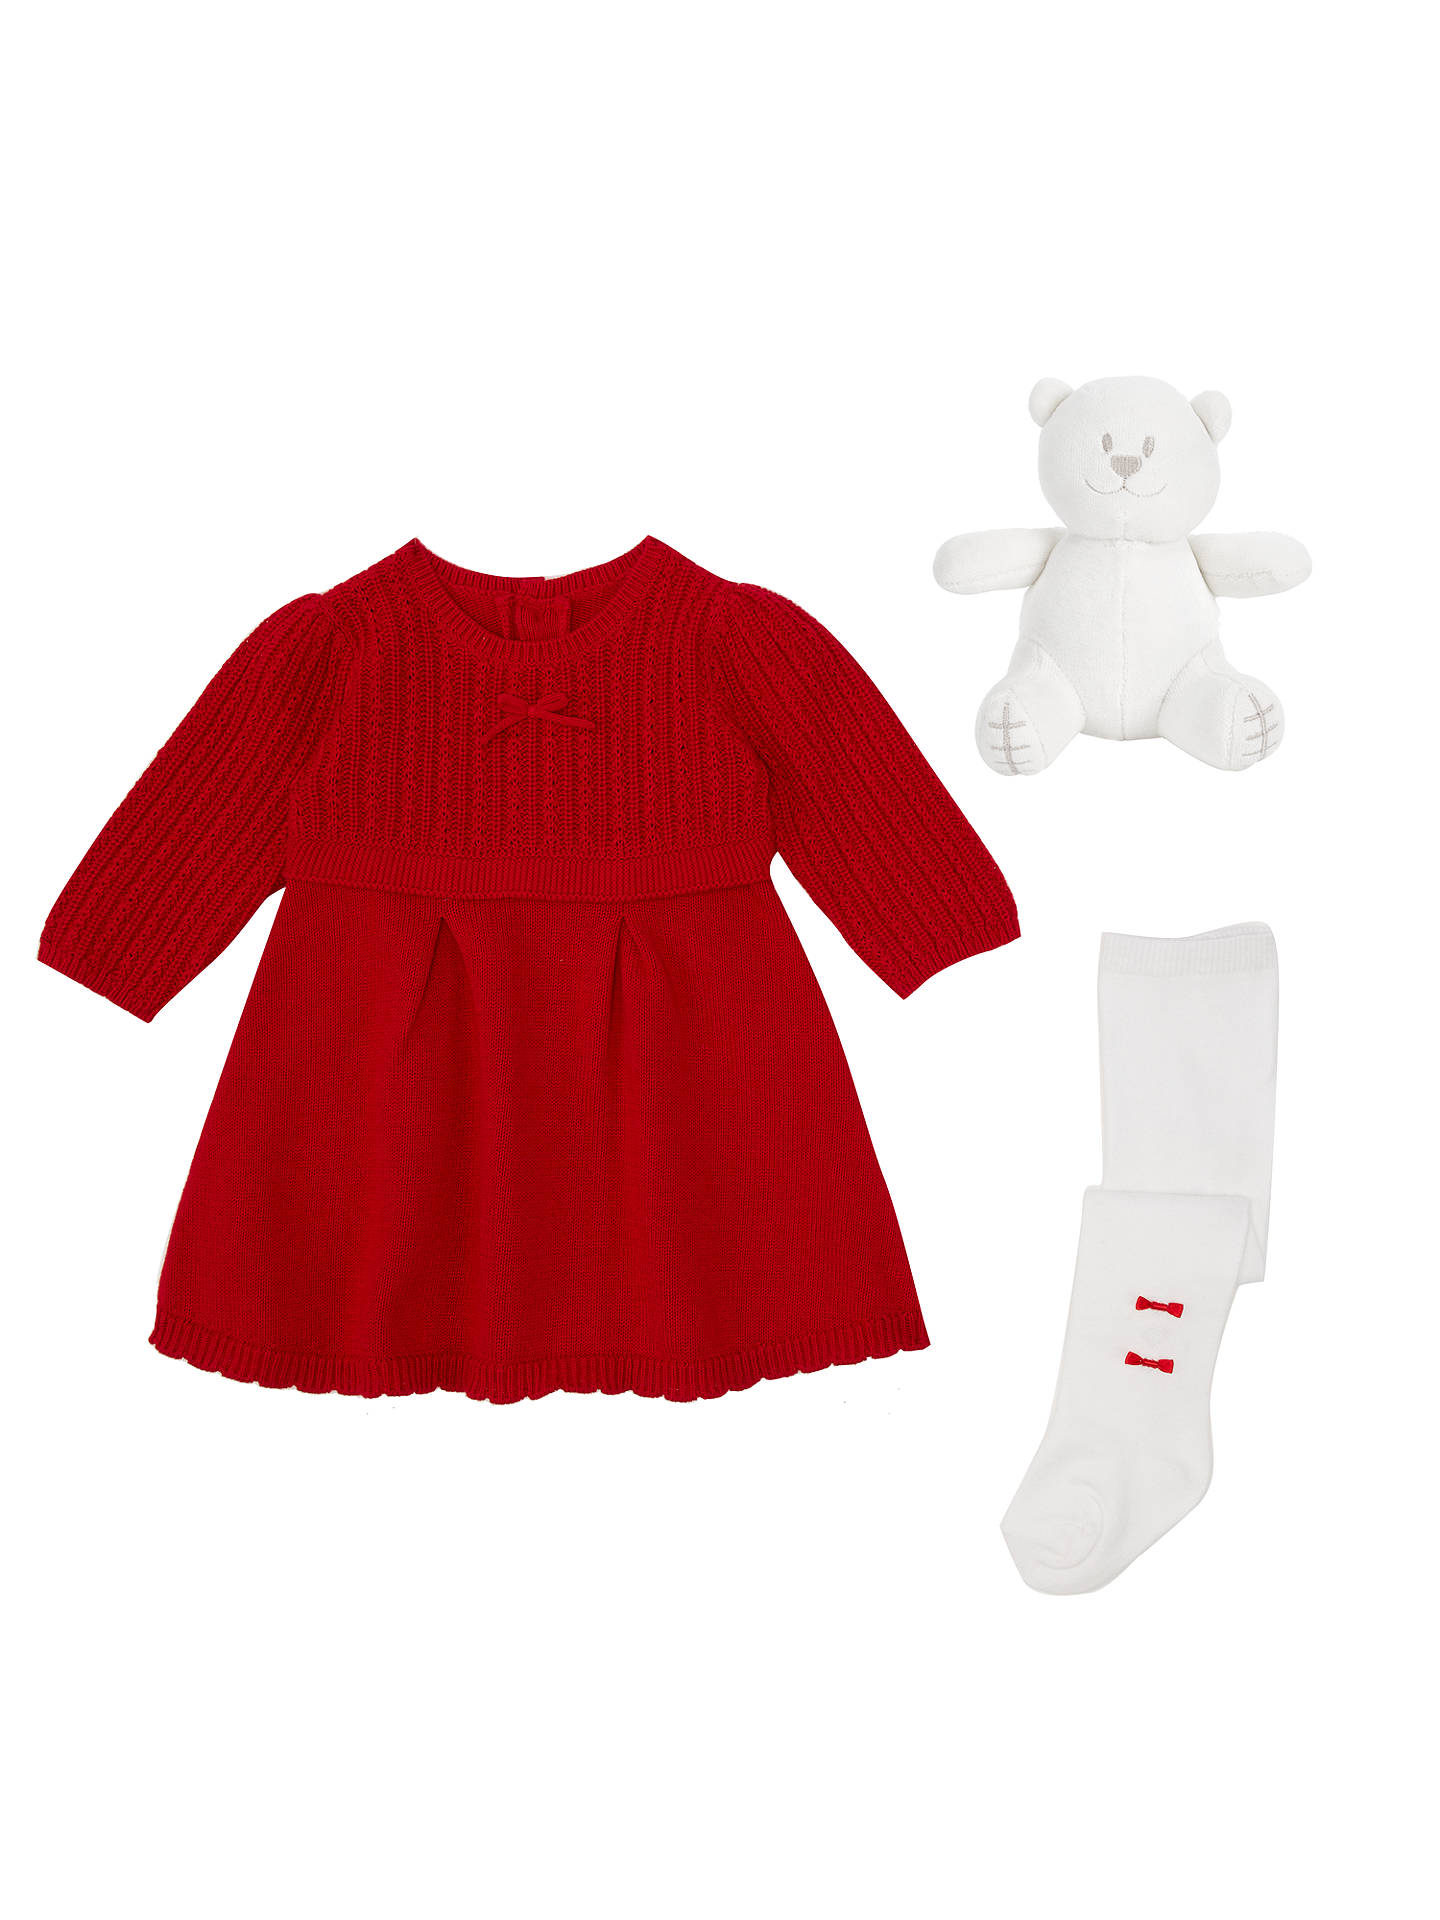 8b68264aa14a Emile et Rose Baby Knit Dress and Tights, Red at John Lewis & Partners